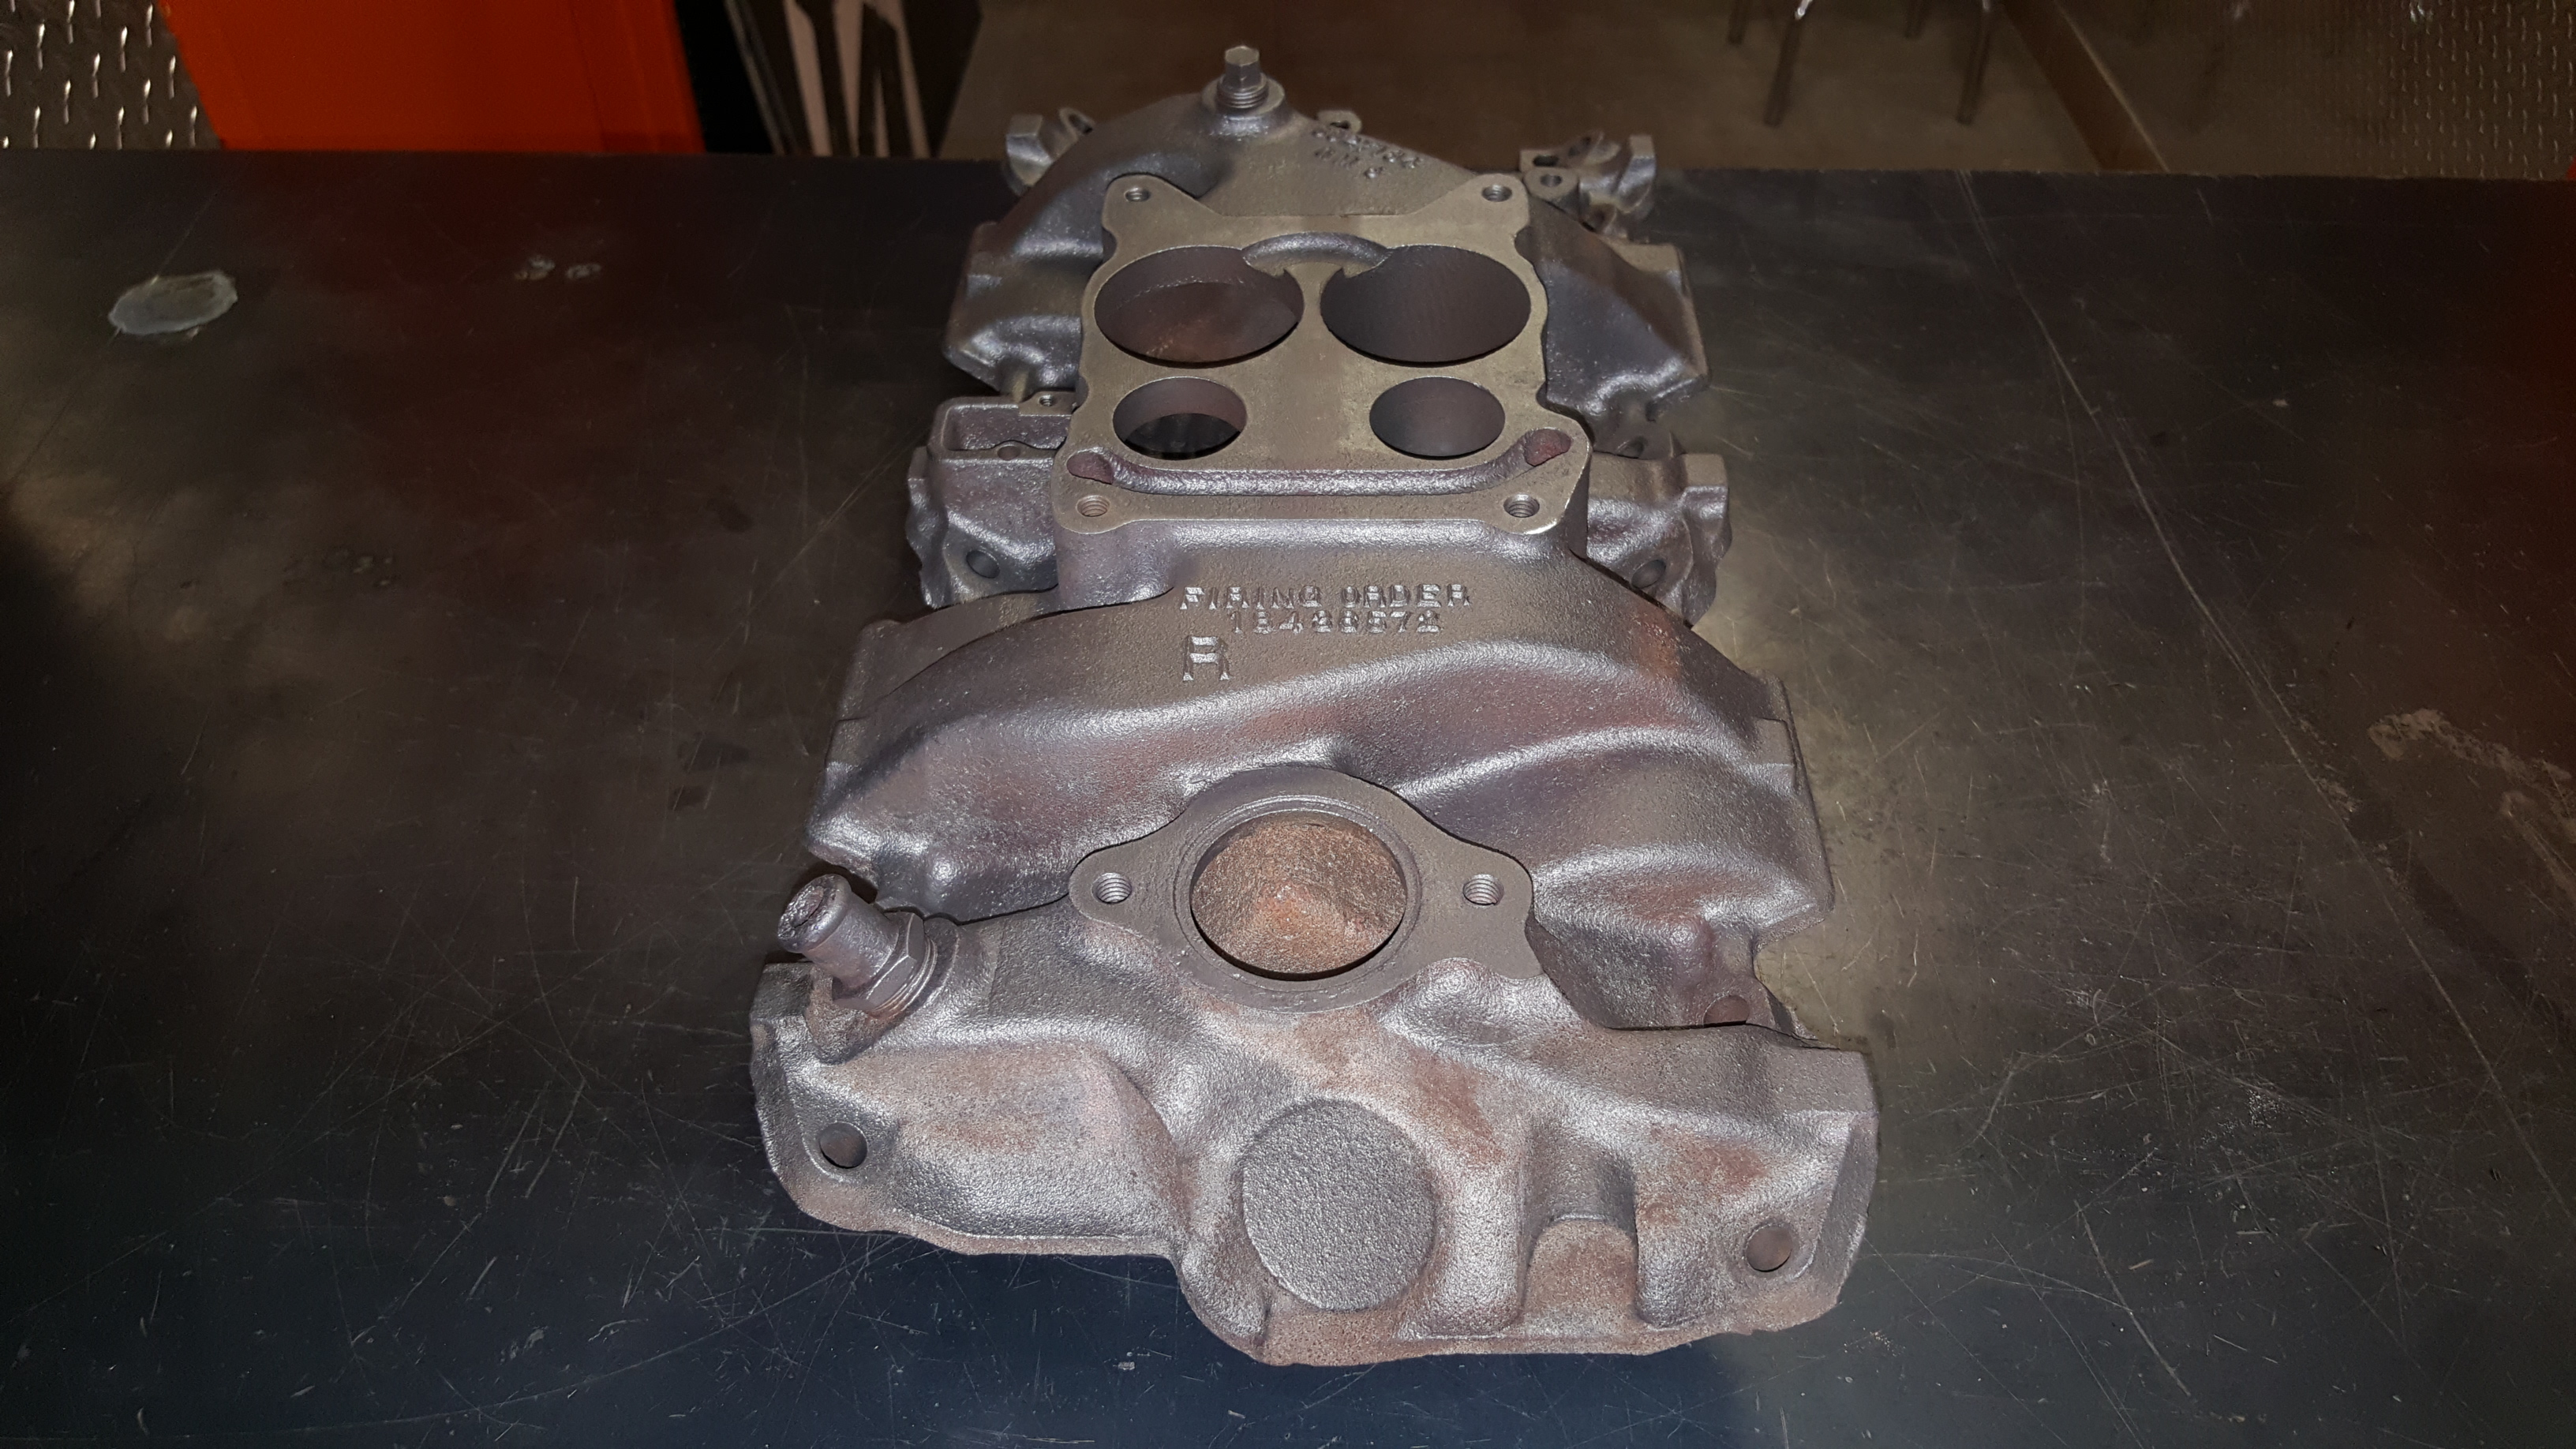 Chevy Camaro Cast Iron Intake Manifold Thermal Cleaning, Baking, and